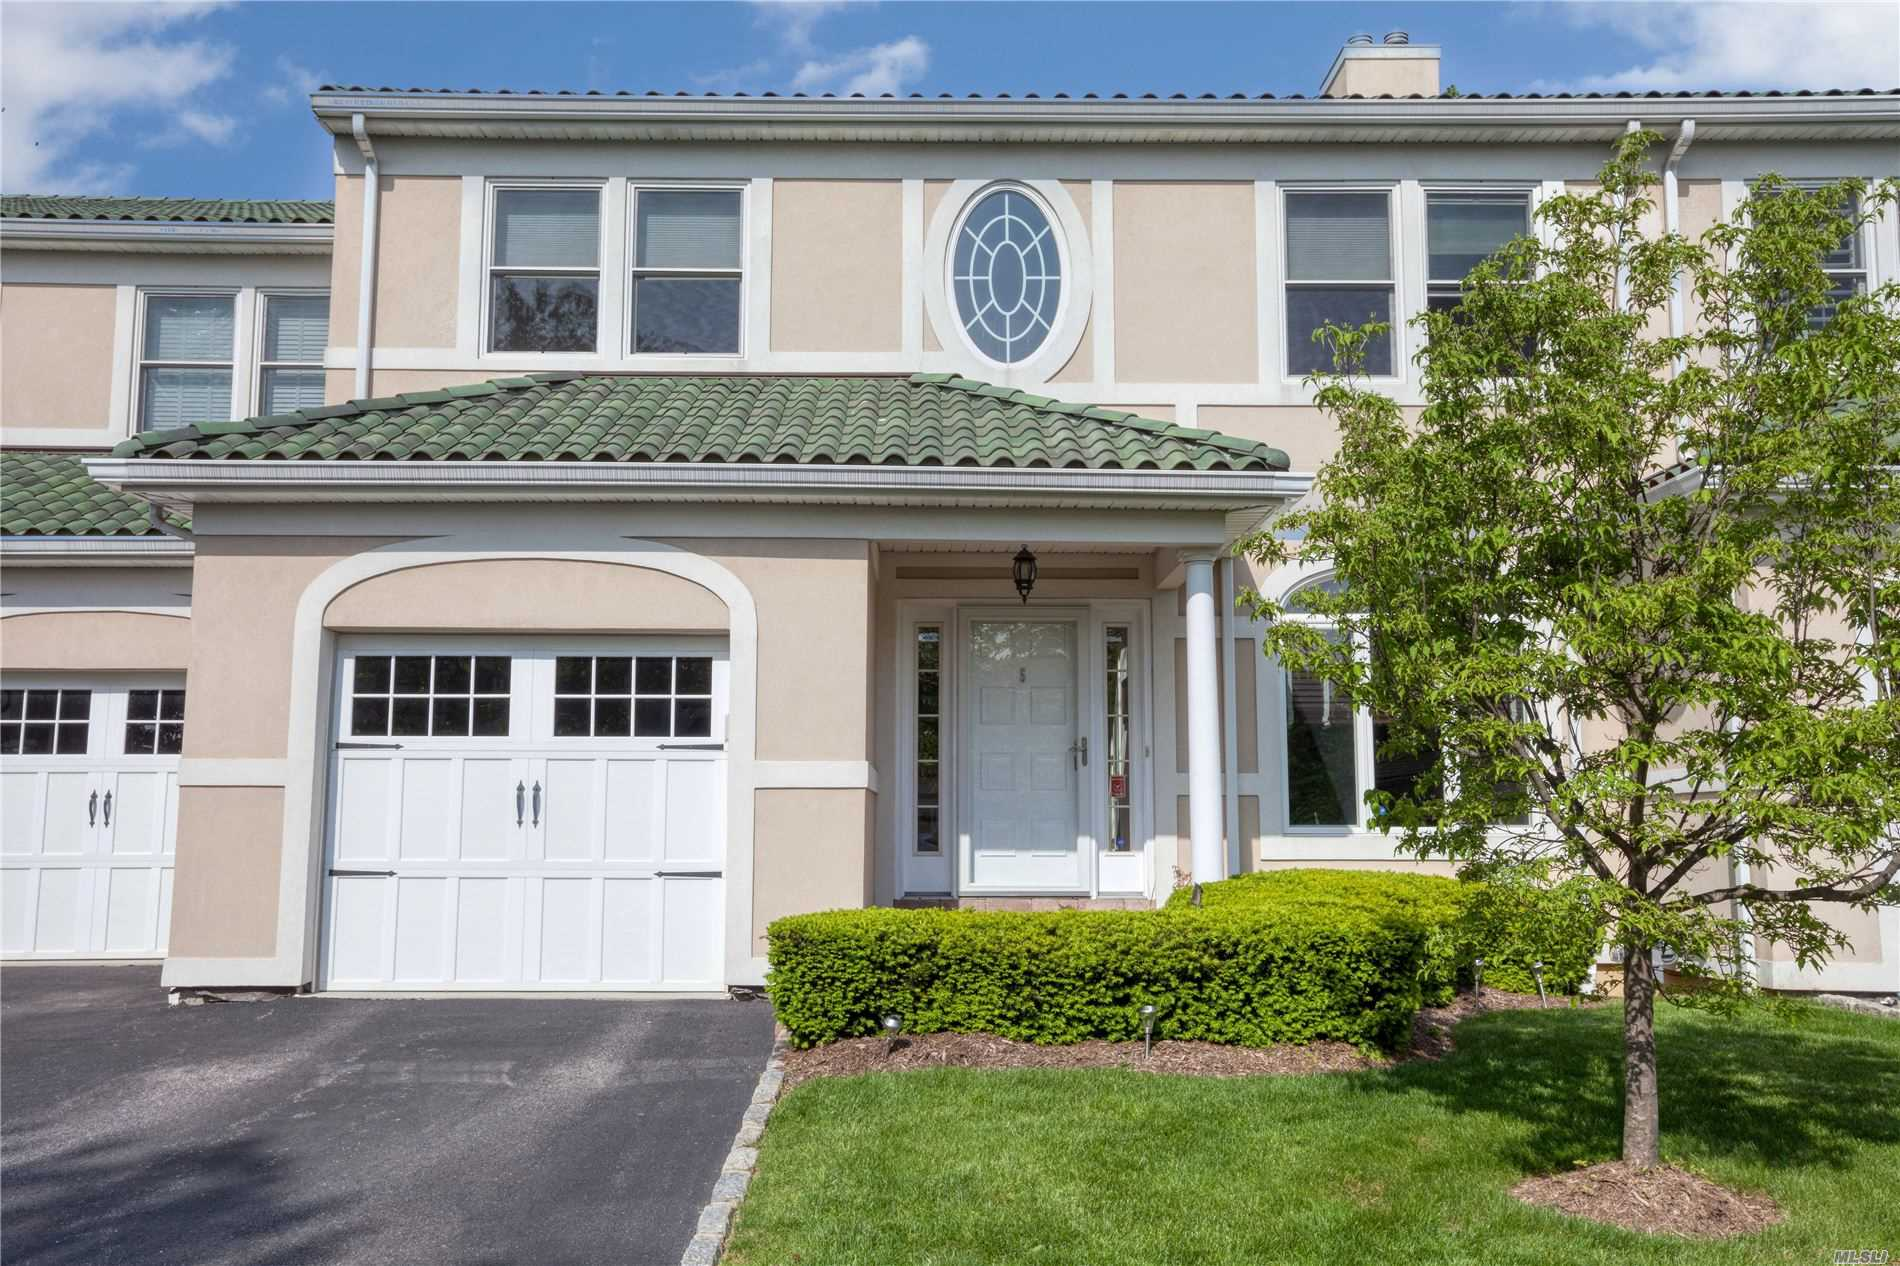 Property for sale at 5 Villa Promenade, Bay Shore NY 11706, Bay Shore,  New York 11706